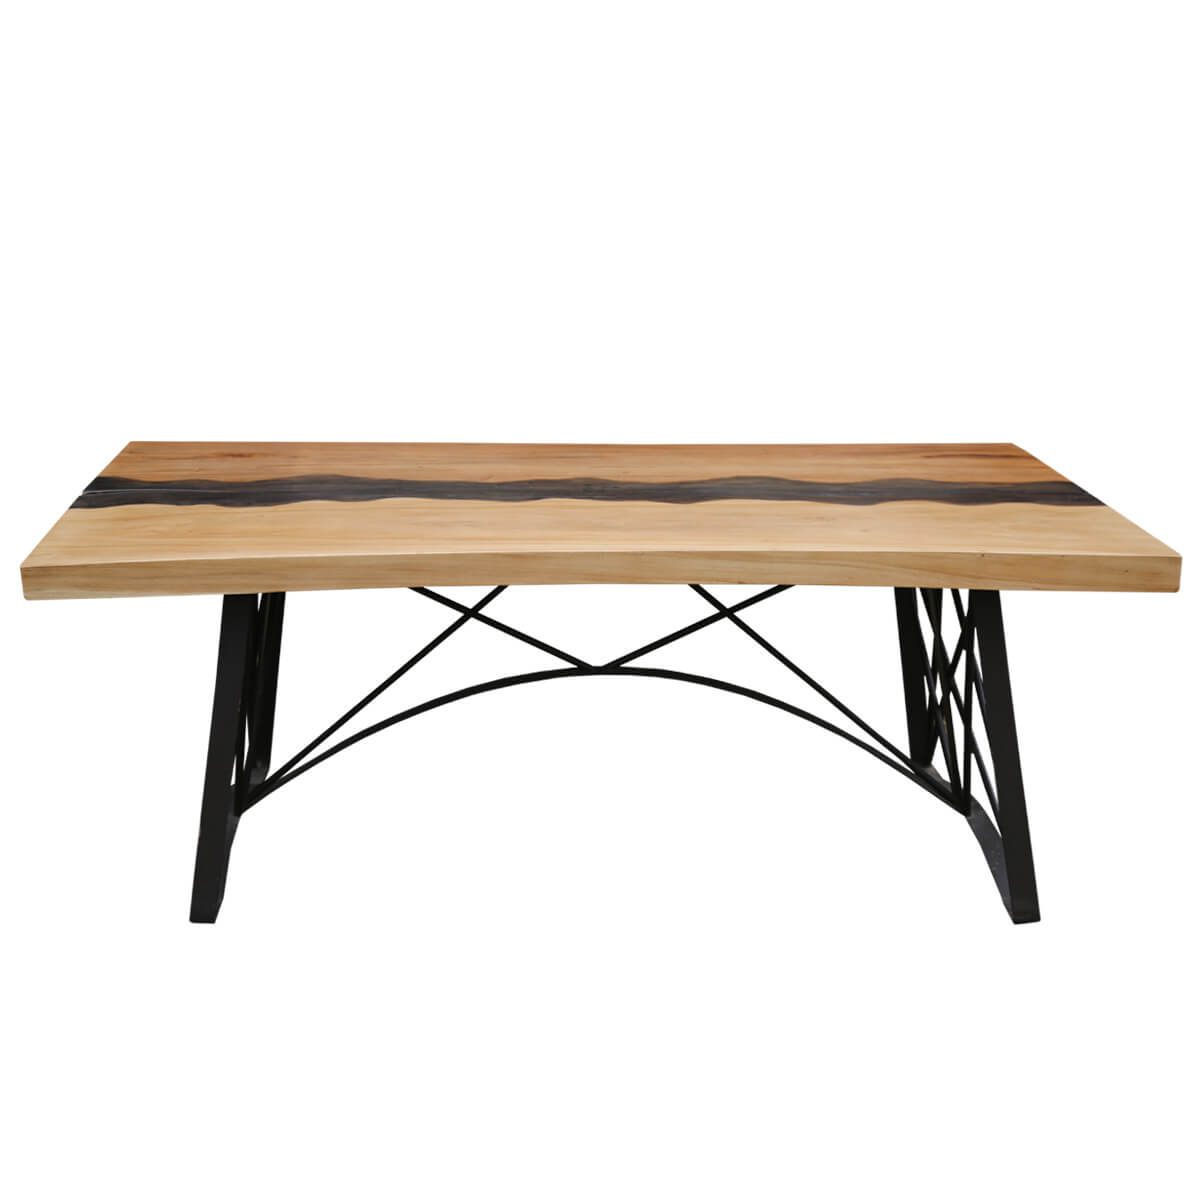 Torrance Iron Base Live Edge Large Industrial Dining Table - Torrance dining table